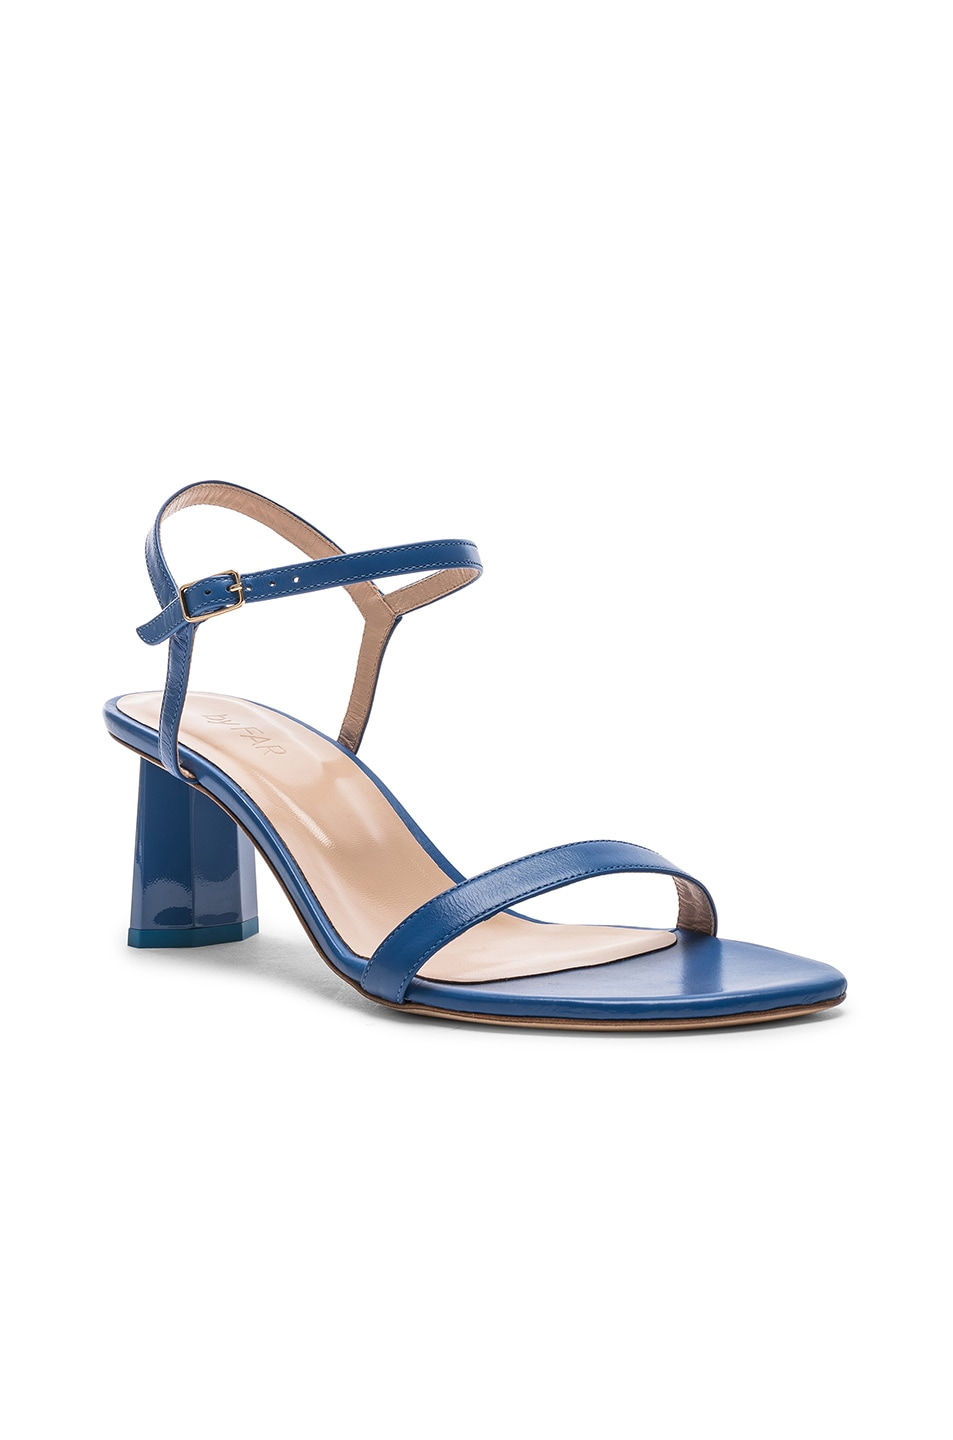 Image 2 of By Far Magnolia Sandal in Marine Blue Leather